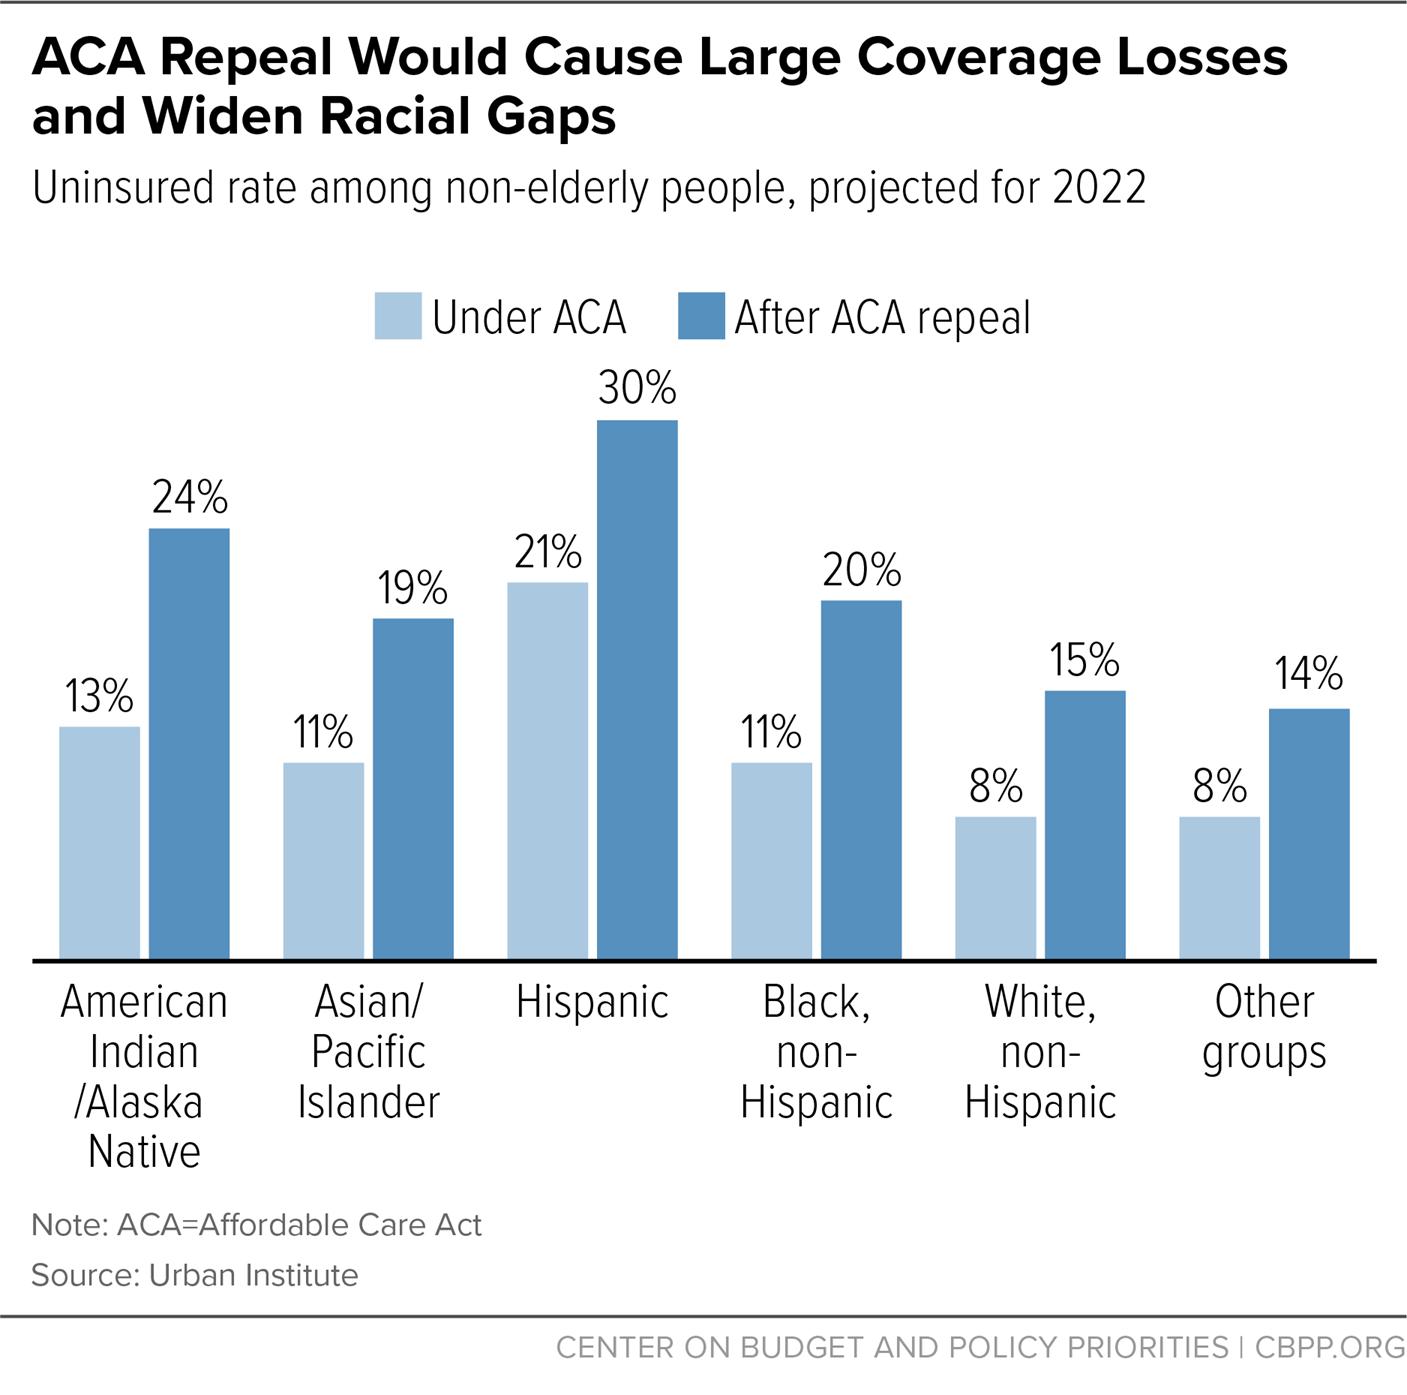 ACA Repeal Would Cause Large Coverage Losses and Widen Racial Gaps